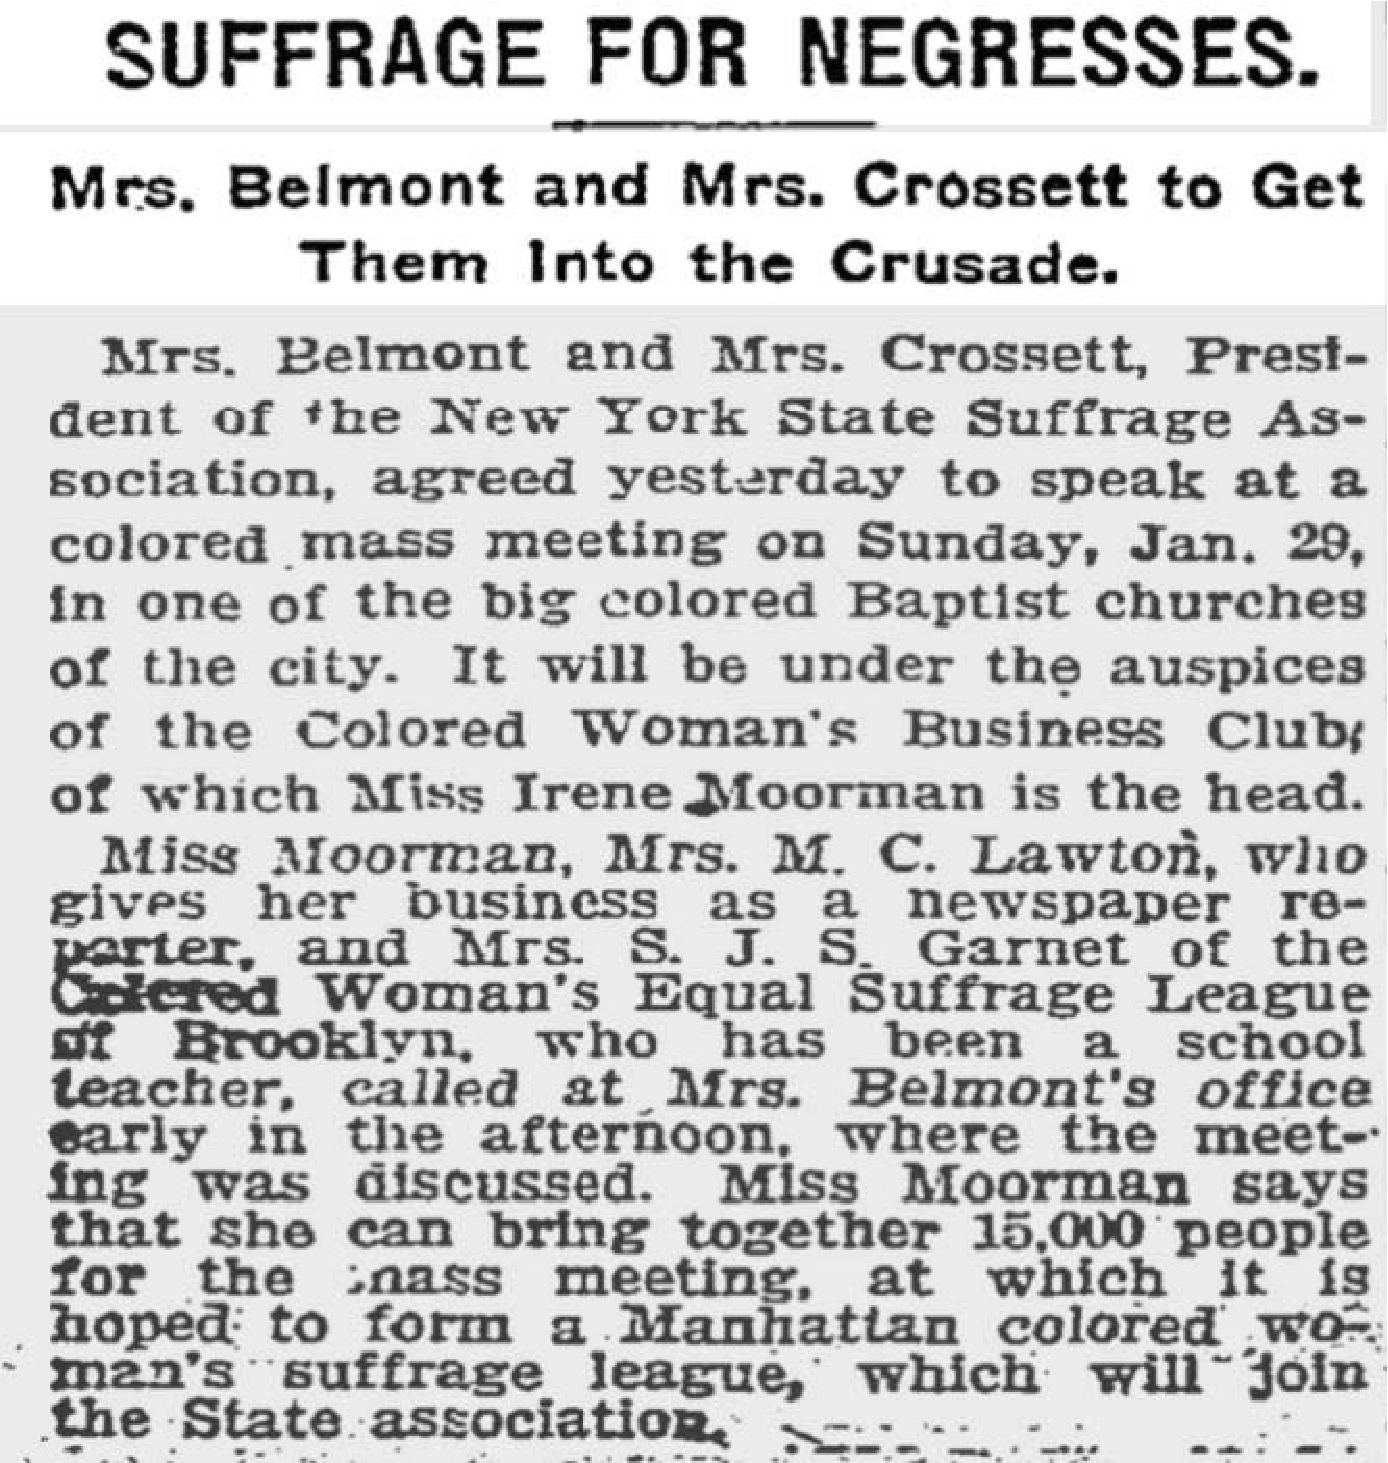 Newspaper article published by the New York Times, January 19, 1910.  Courtesy of the New York State Women's Suffrage Exhibition Collection. https://cdm16694.contentdm.oclc.org/digital/collection/p16694coll52/id/672